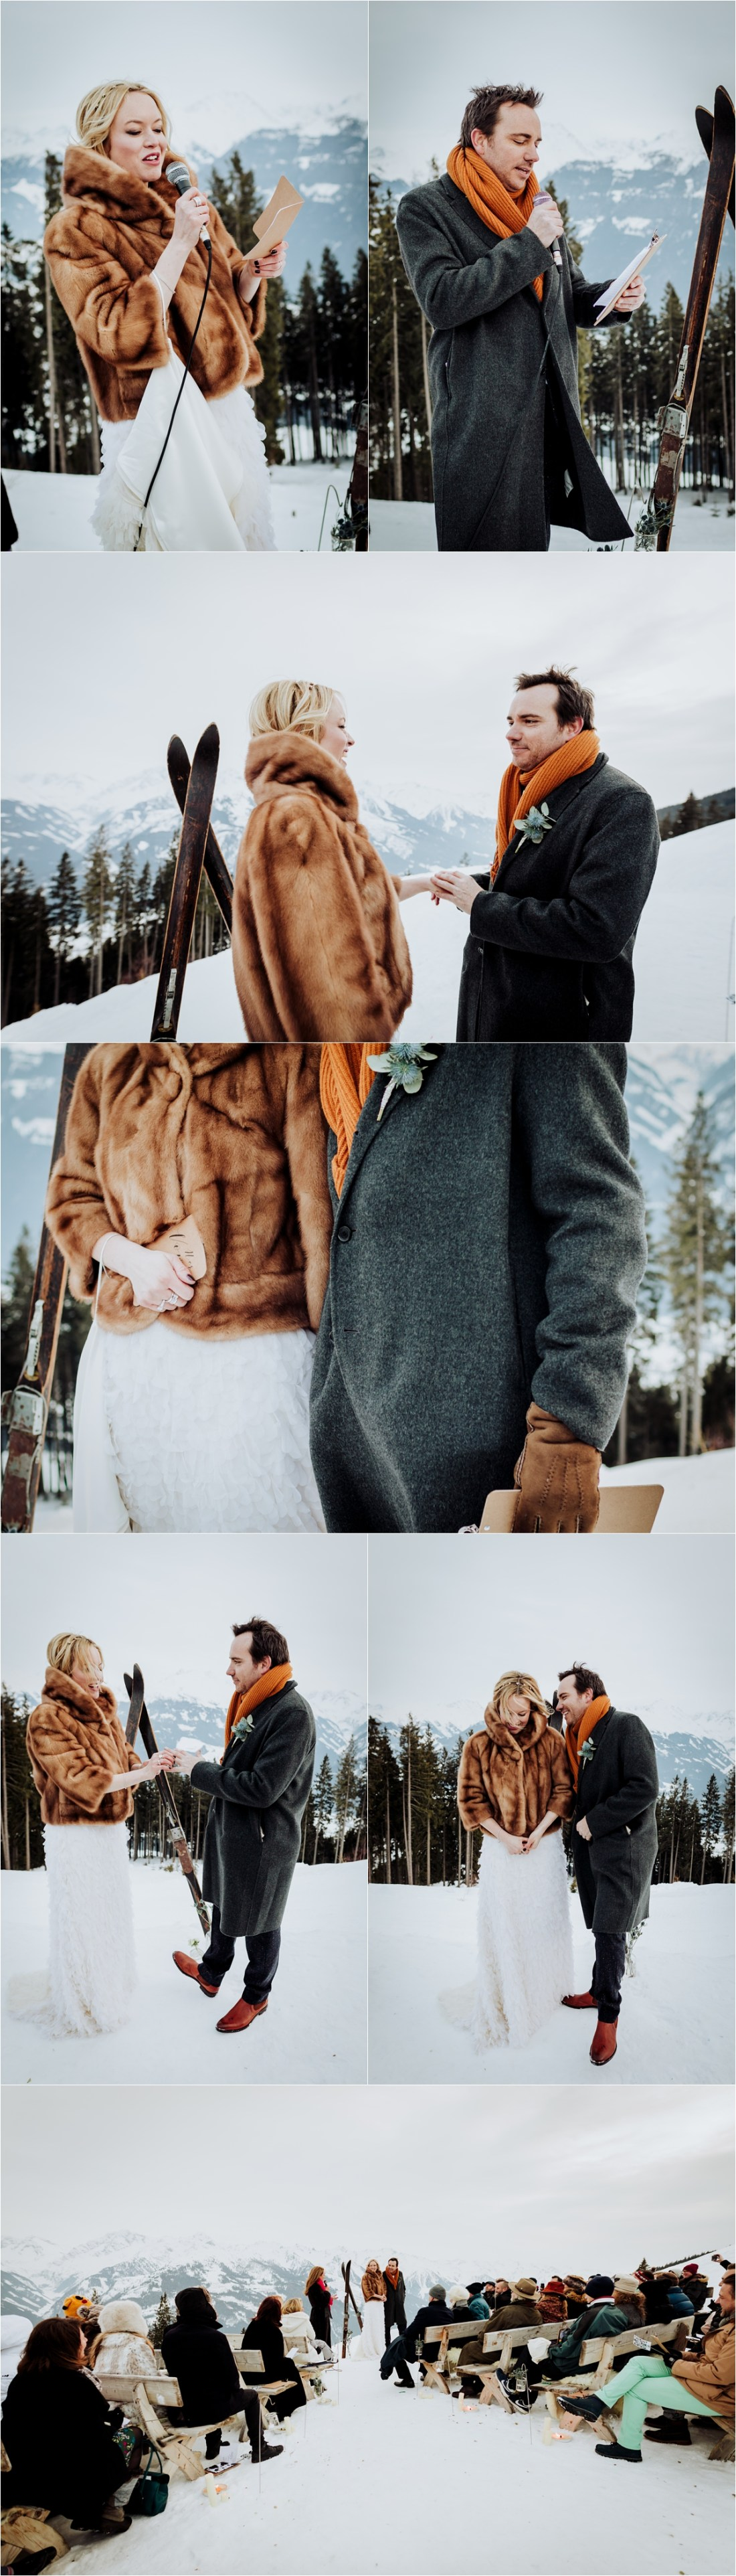 A winter mountain wedding ceremony in the Austrian Alps by Wild Connections Photography